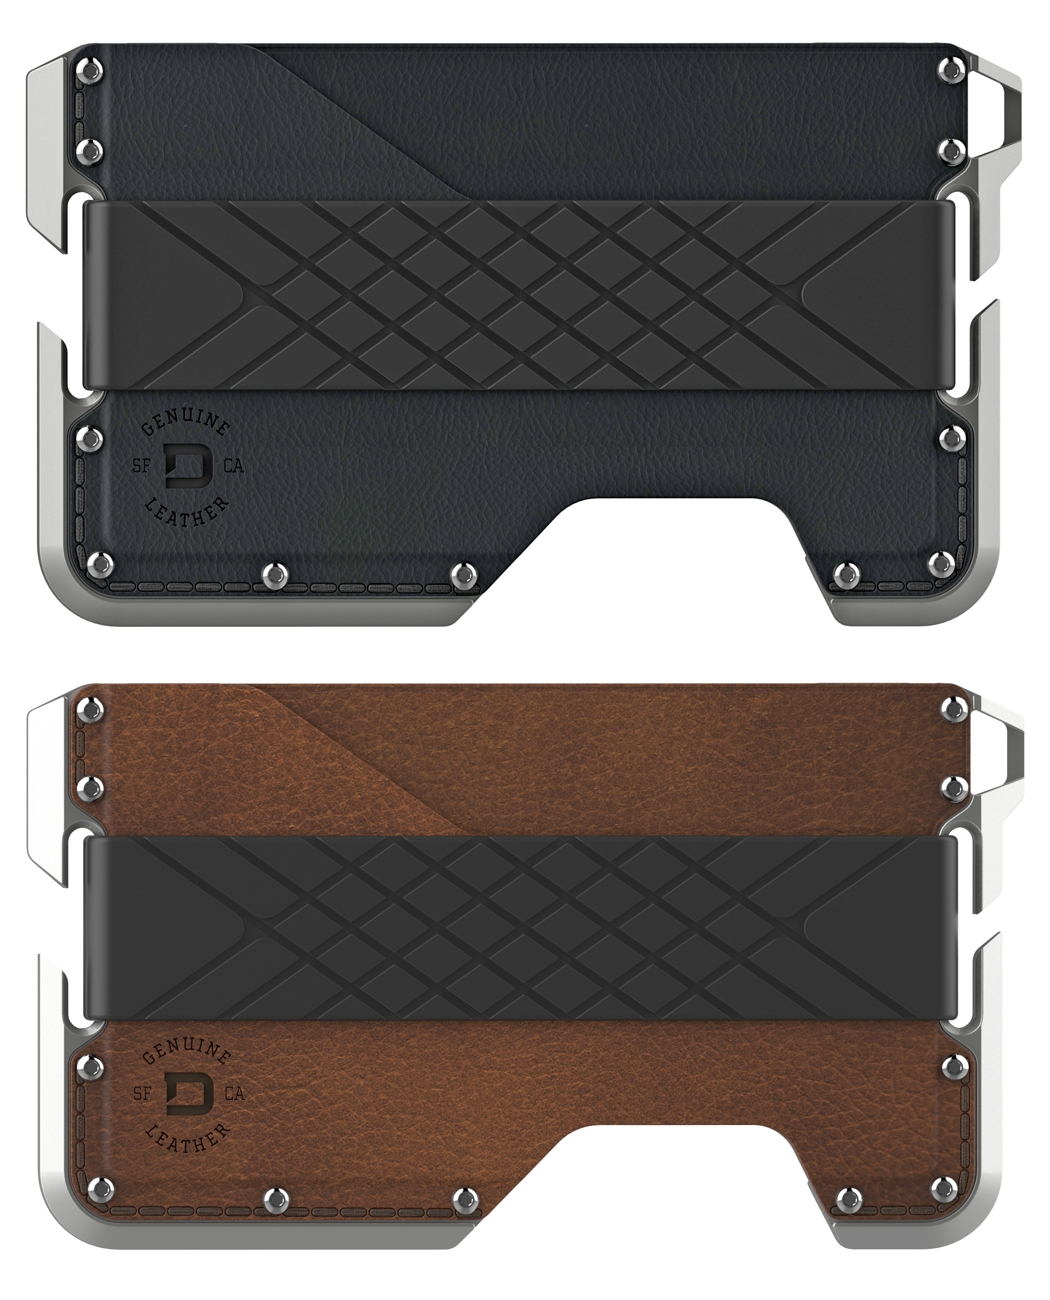 Wallet for the Warrior of the Concrete Jungle! | Yanko Design